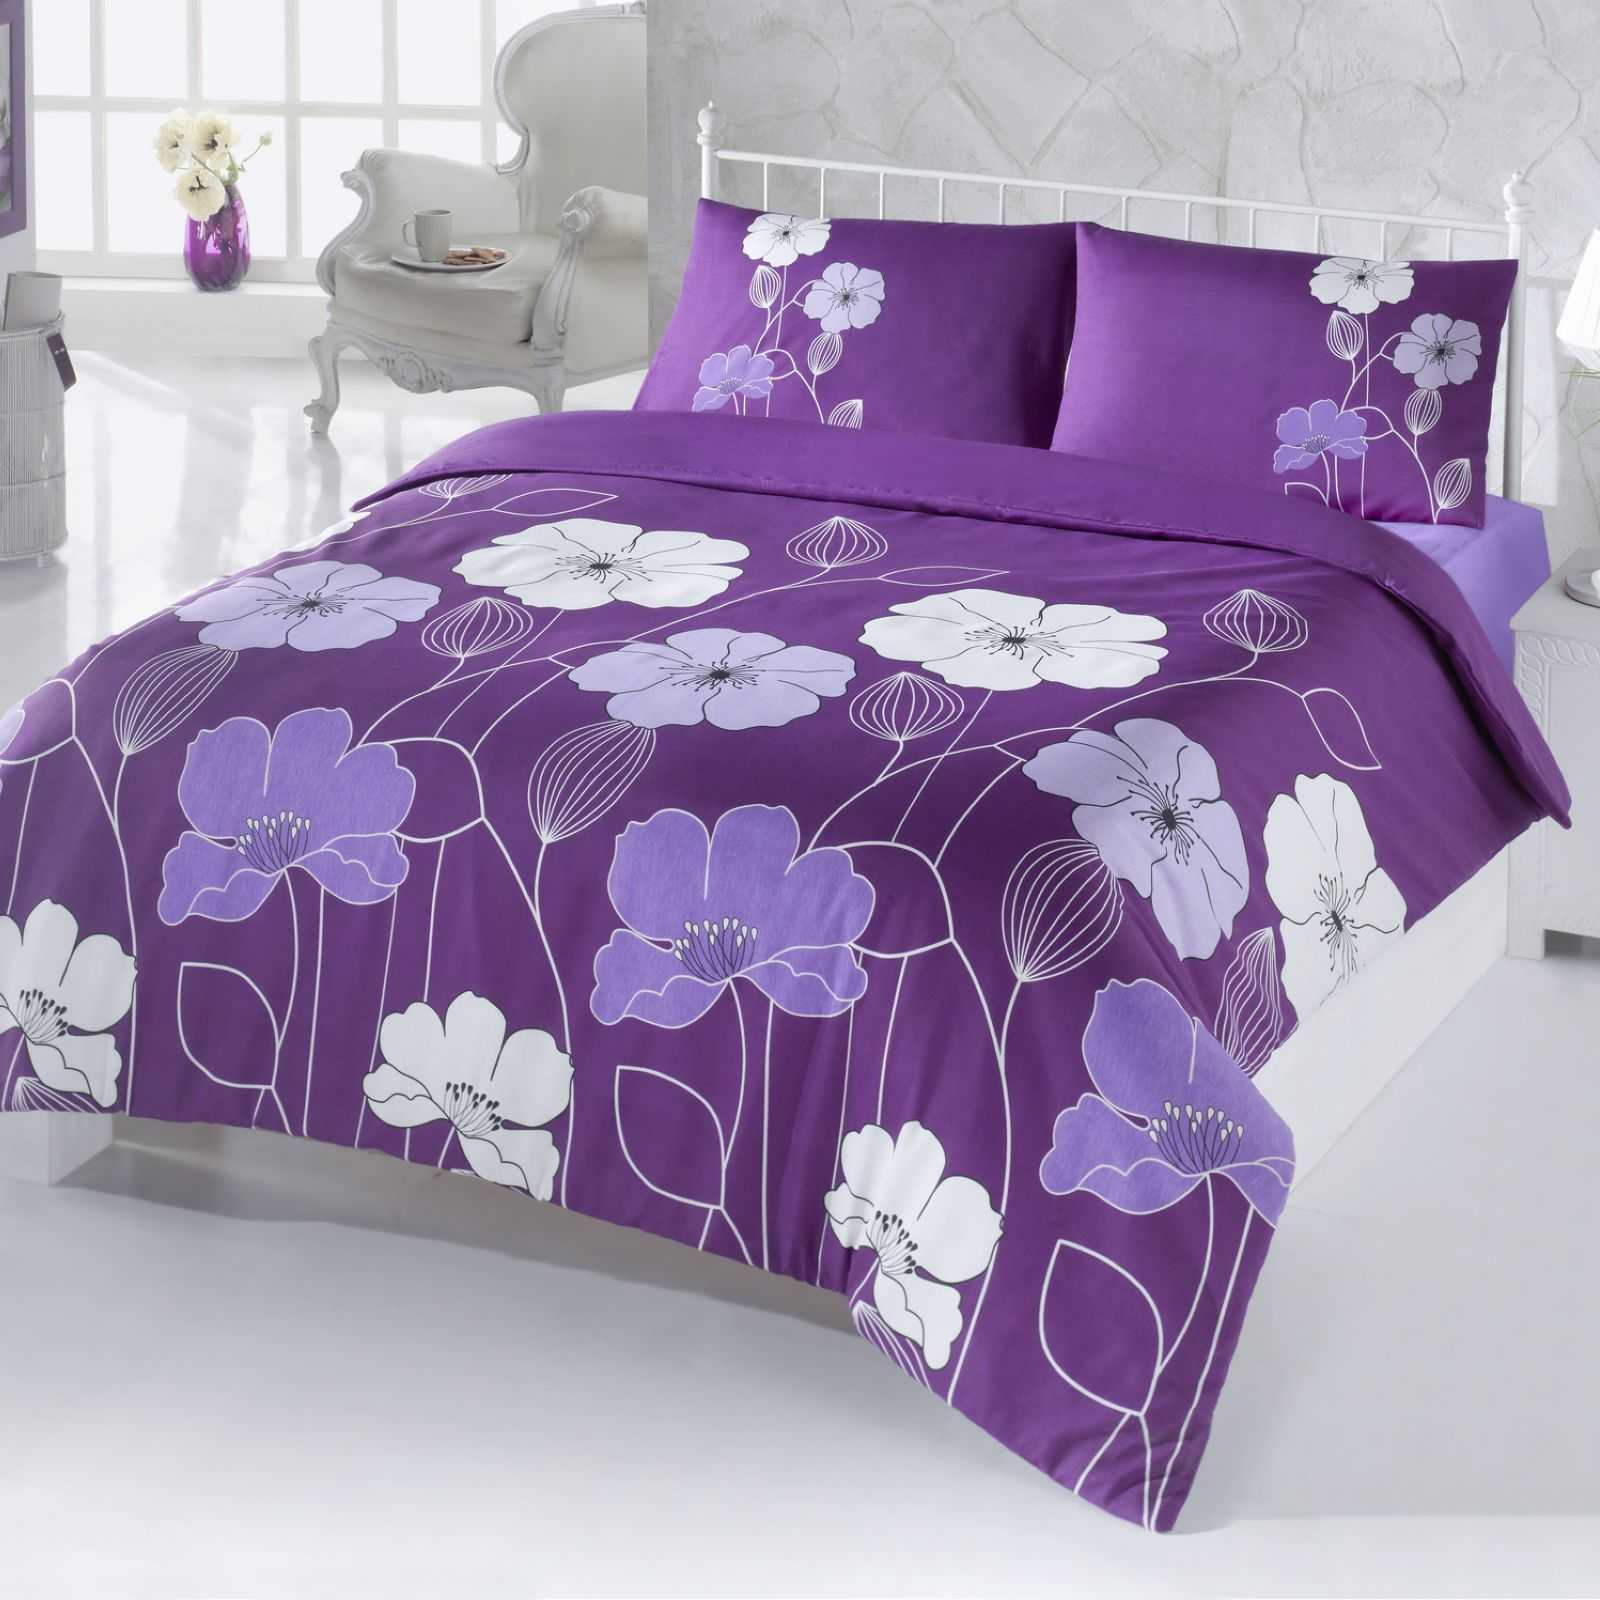 en vogue parure de lit violet brandalley. Black Bedroom Furniture Sets. Home Design Ideas